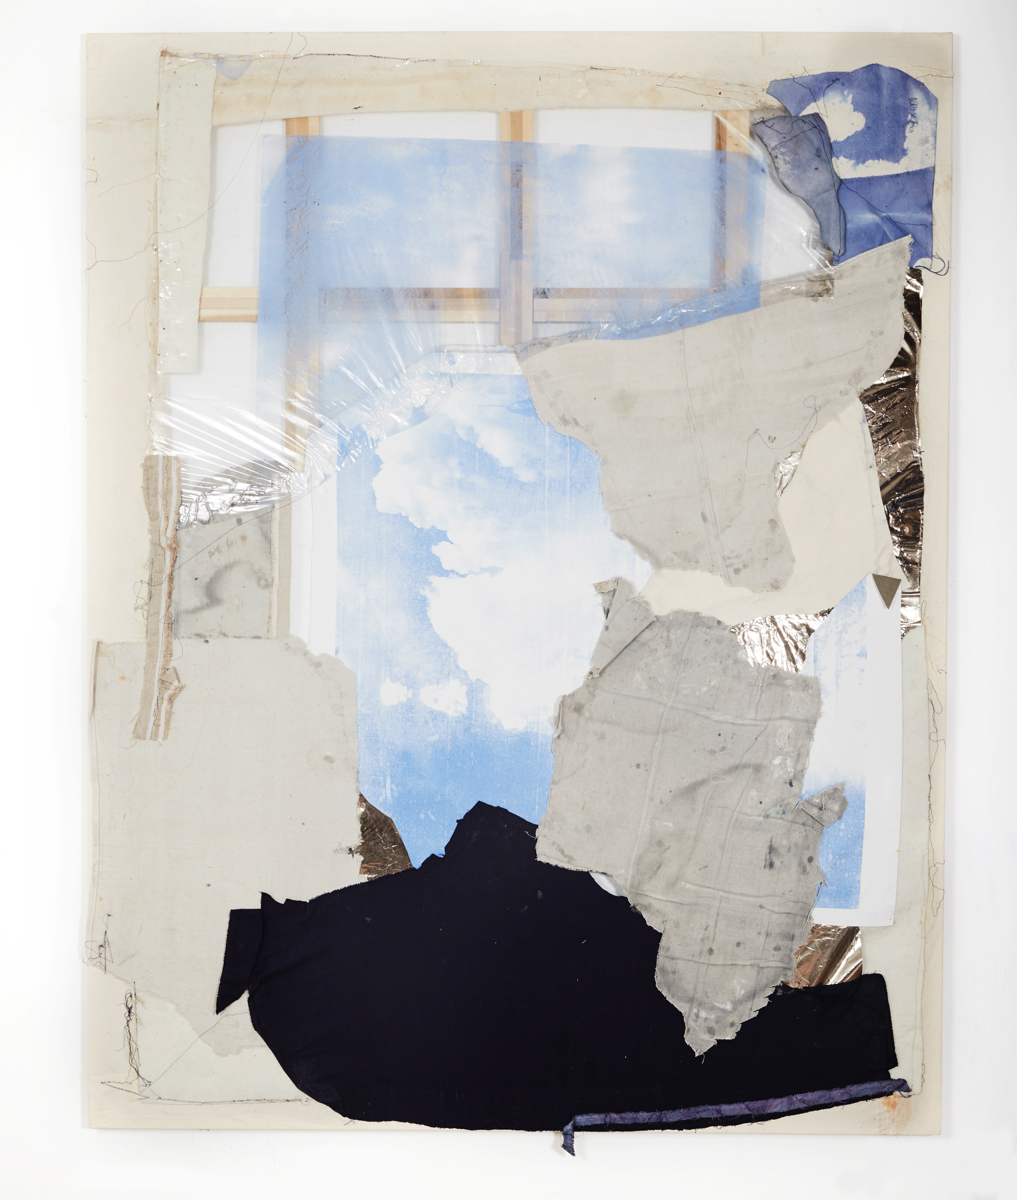 Sam Holt_'Seeing it all now, I'd never have imagined it back then'_2019_Acyrlic, canvas, window tinting and fabric_217x170cm_.jpg